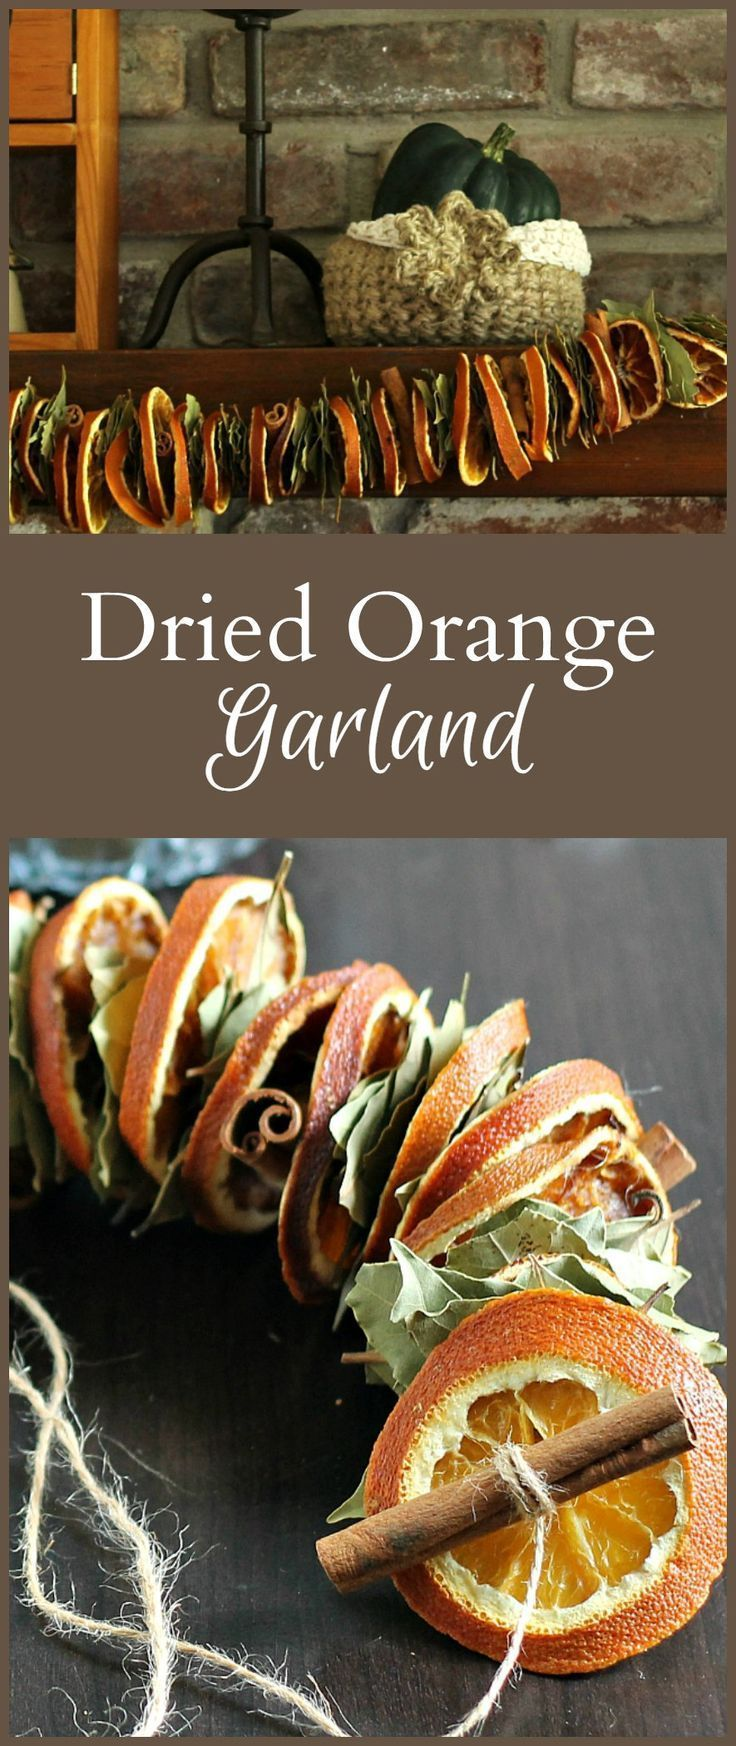 Learn how to make this dried orange garland with bay leaves and cinnamon sticks. It's a fun and easy decorating project for your fall home decor.